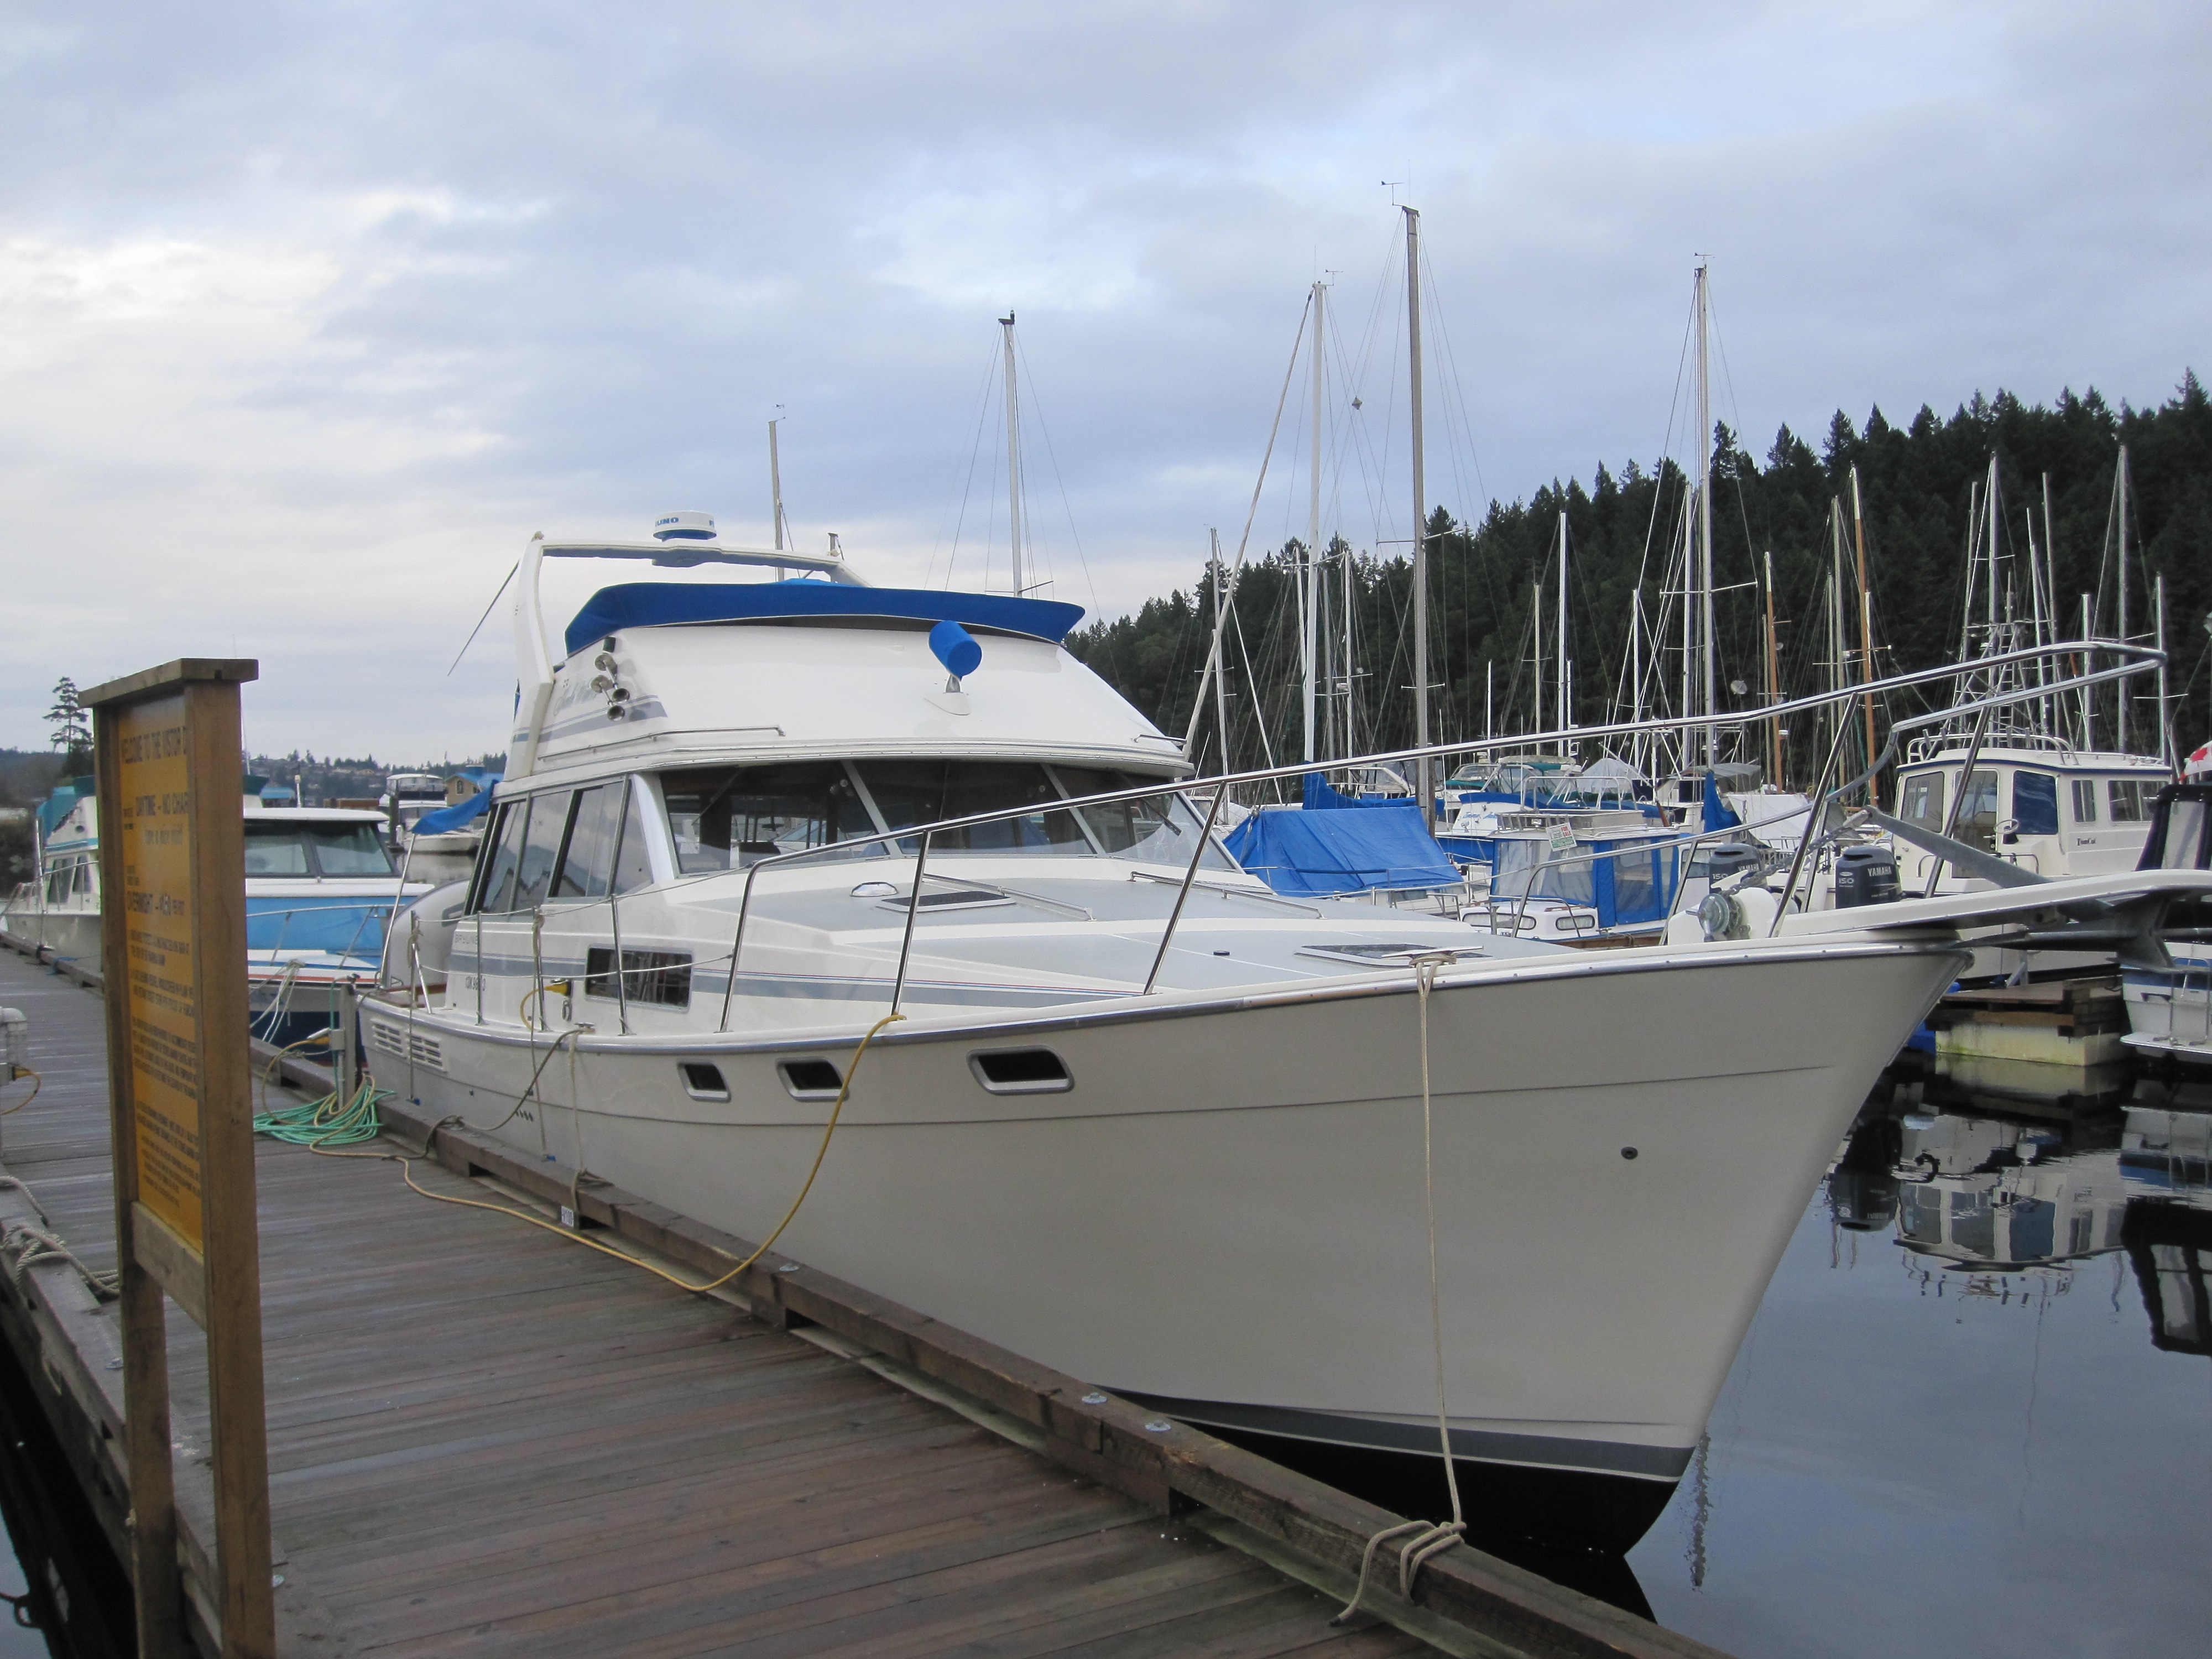 Yacht charter Bayliner 3888 - Canada, Vancouver, Nanaimo